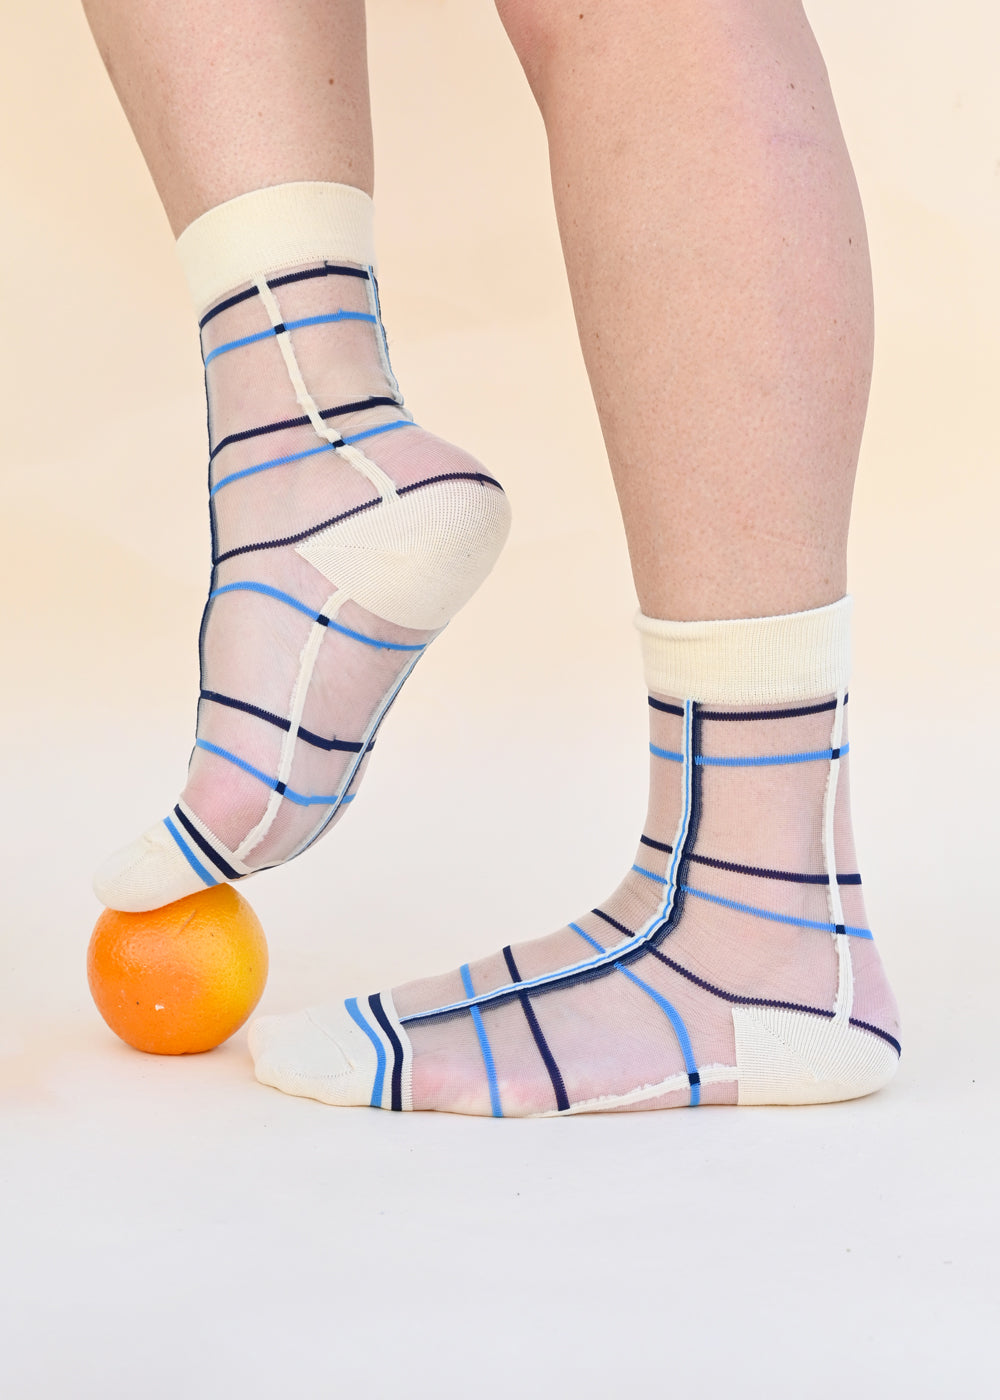 Window Pane Sheer Socks - Blue - cara cara